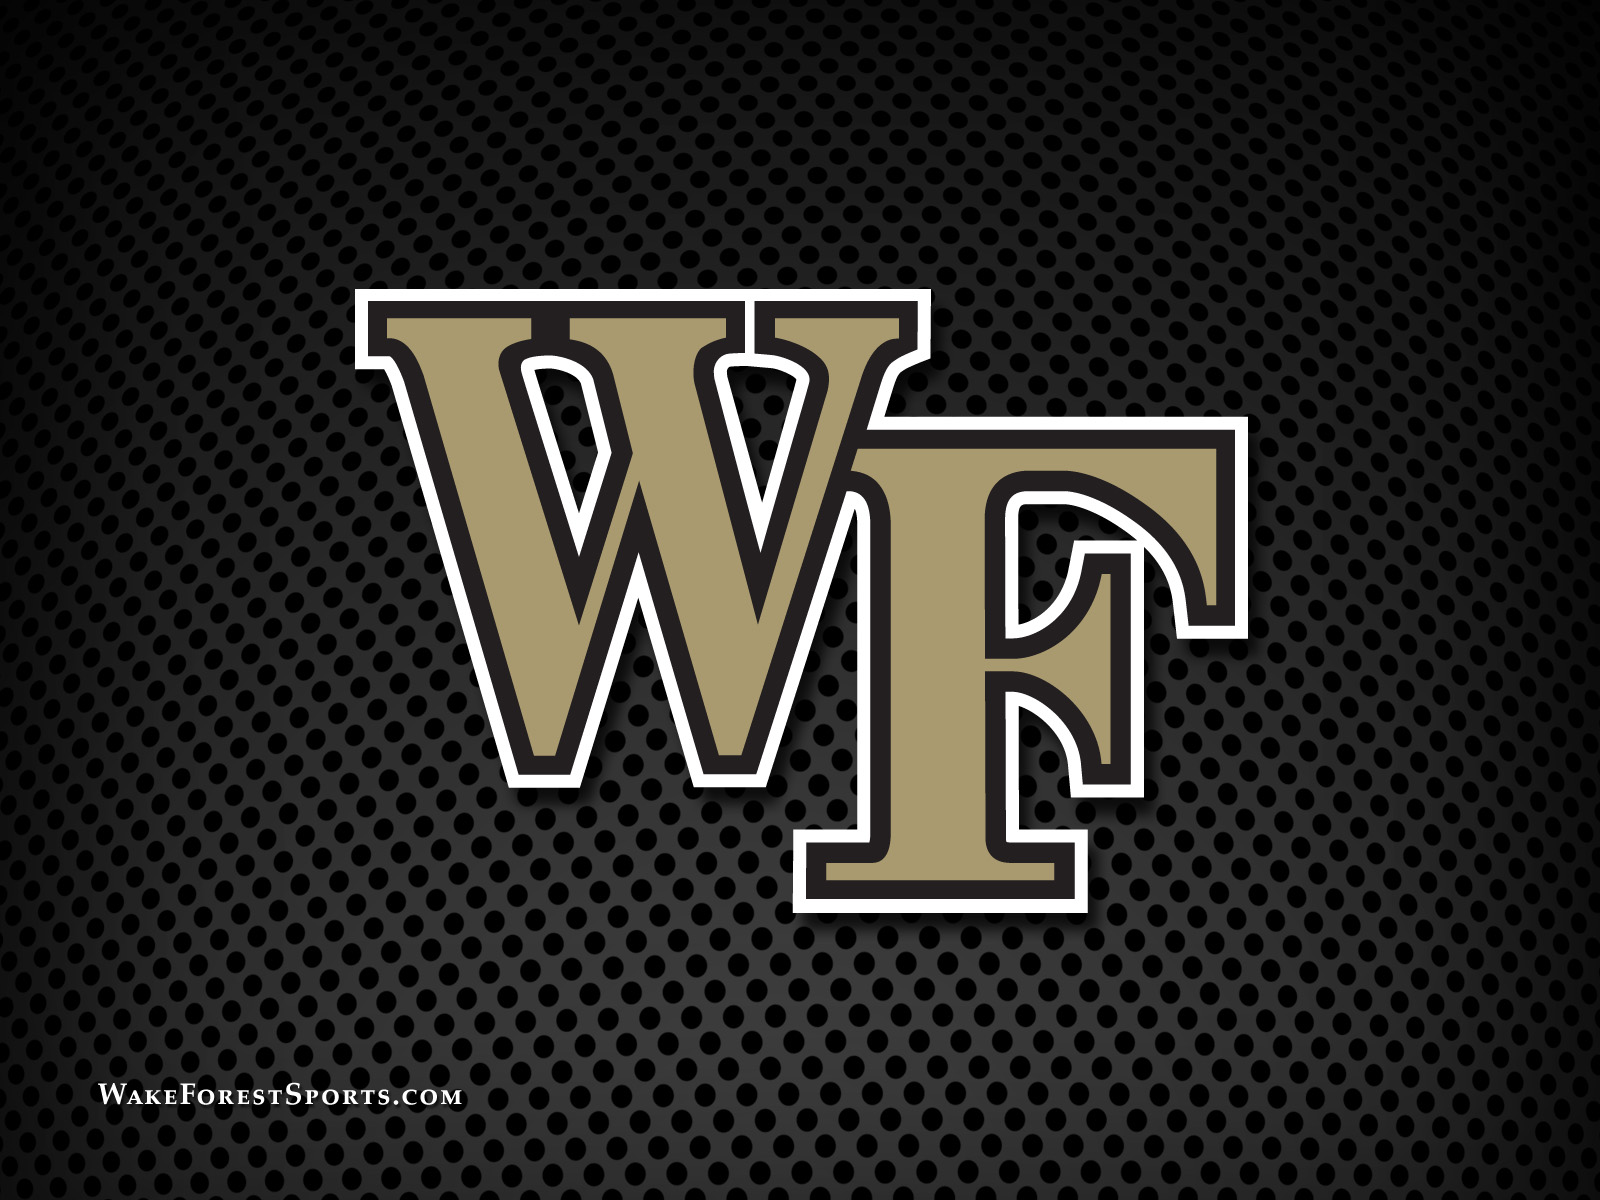 wallpaper download options - wake forest university